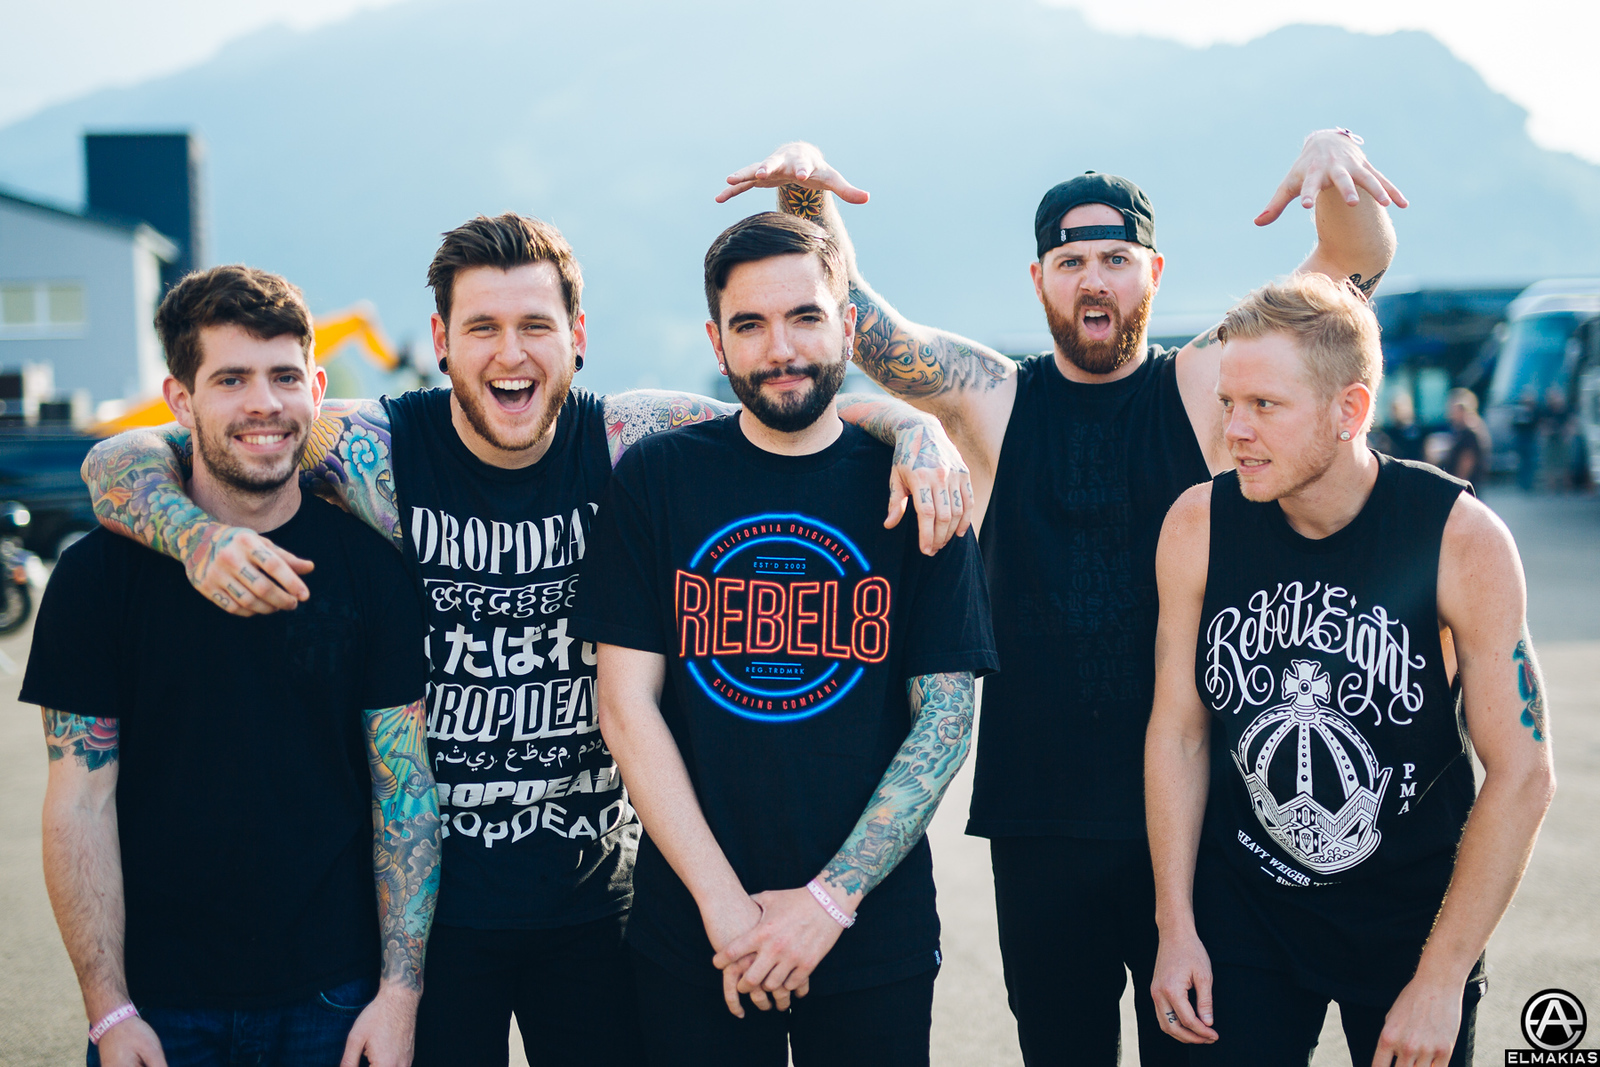 A Day To Remember at Greenfield Festival in Interlaken, Switzerland - European Festivals